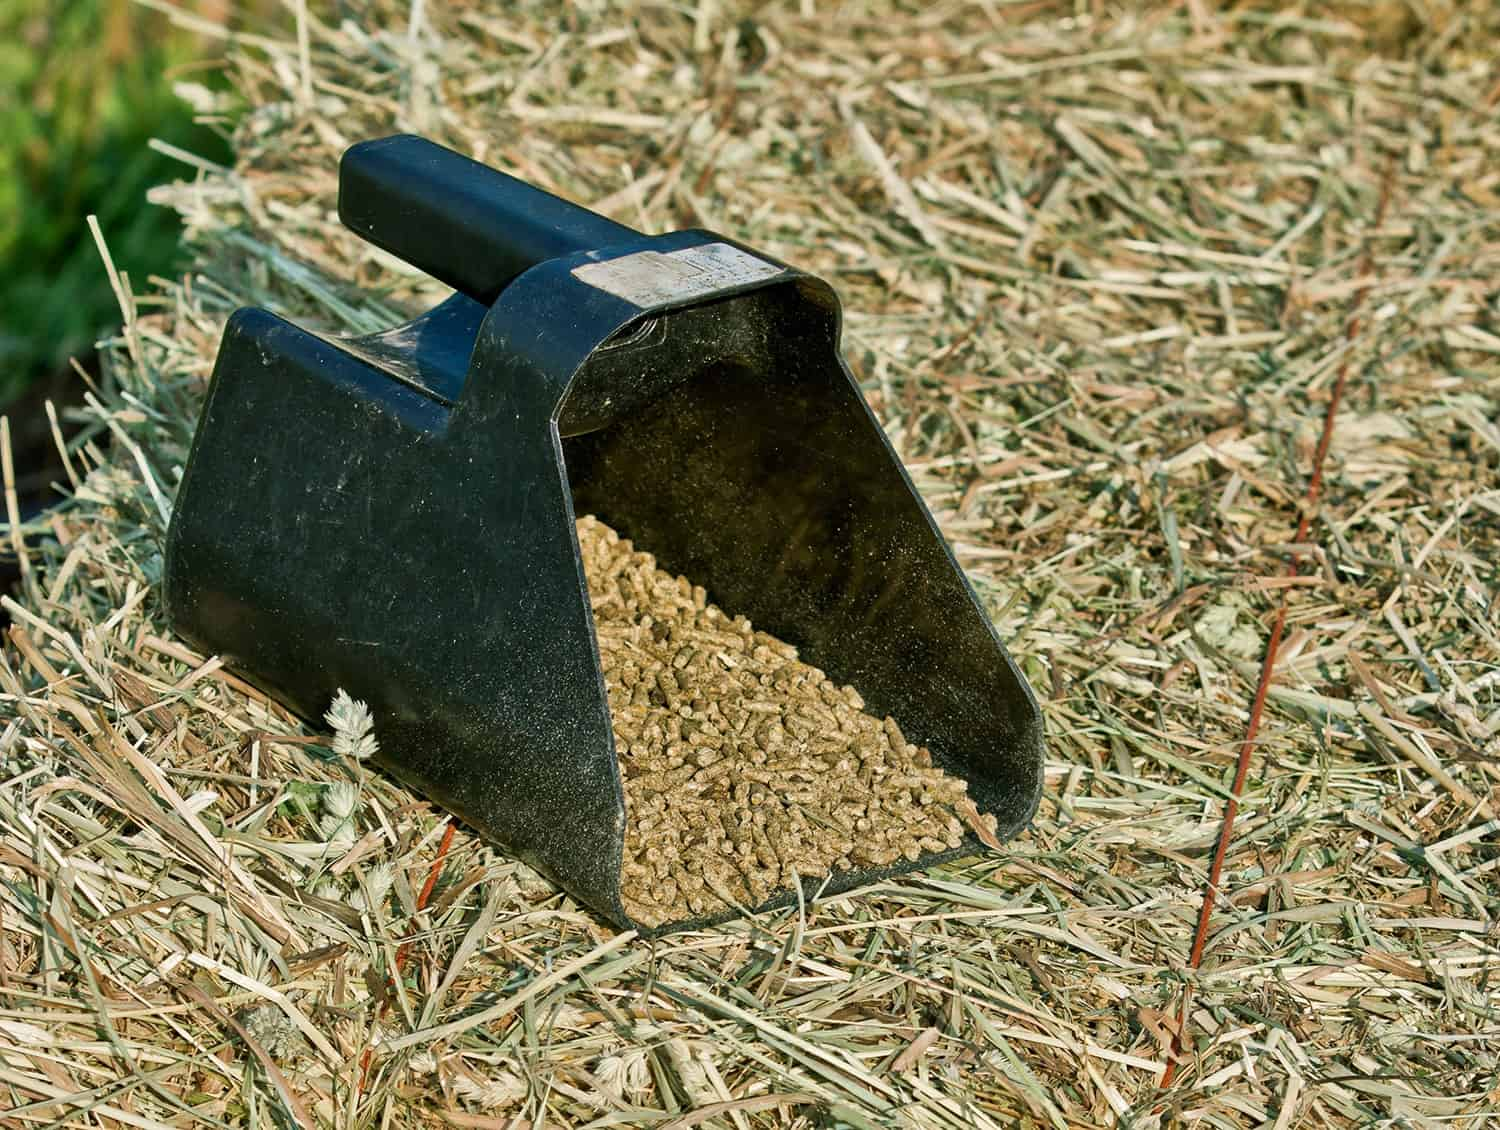 Alfalfa: Are Hay or Pellets Better Before Riding? – The Horse